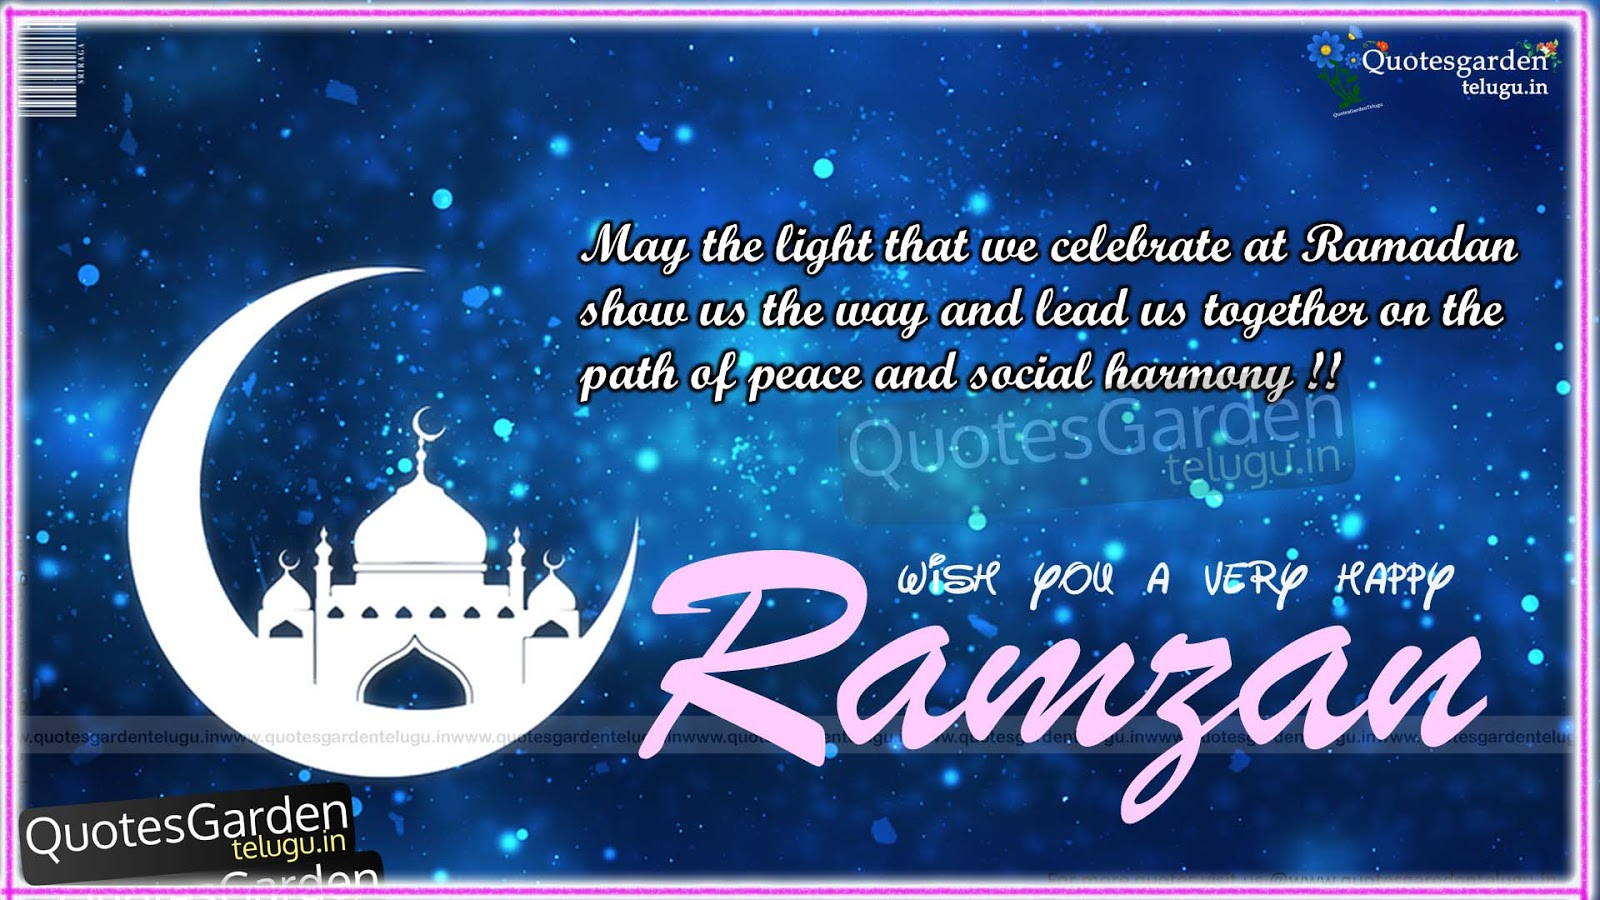 Happy Ramadan Greetings Wishes Messages Quotes Garden